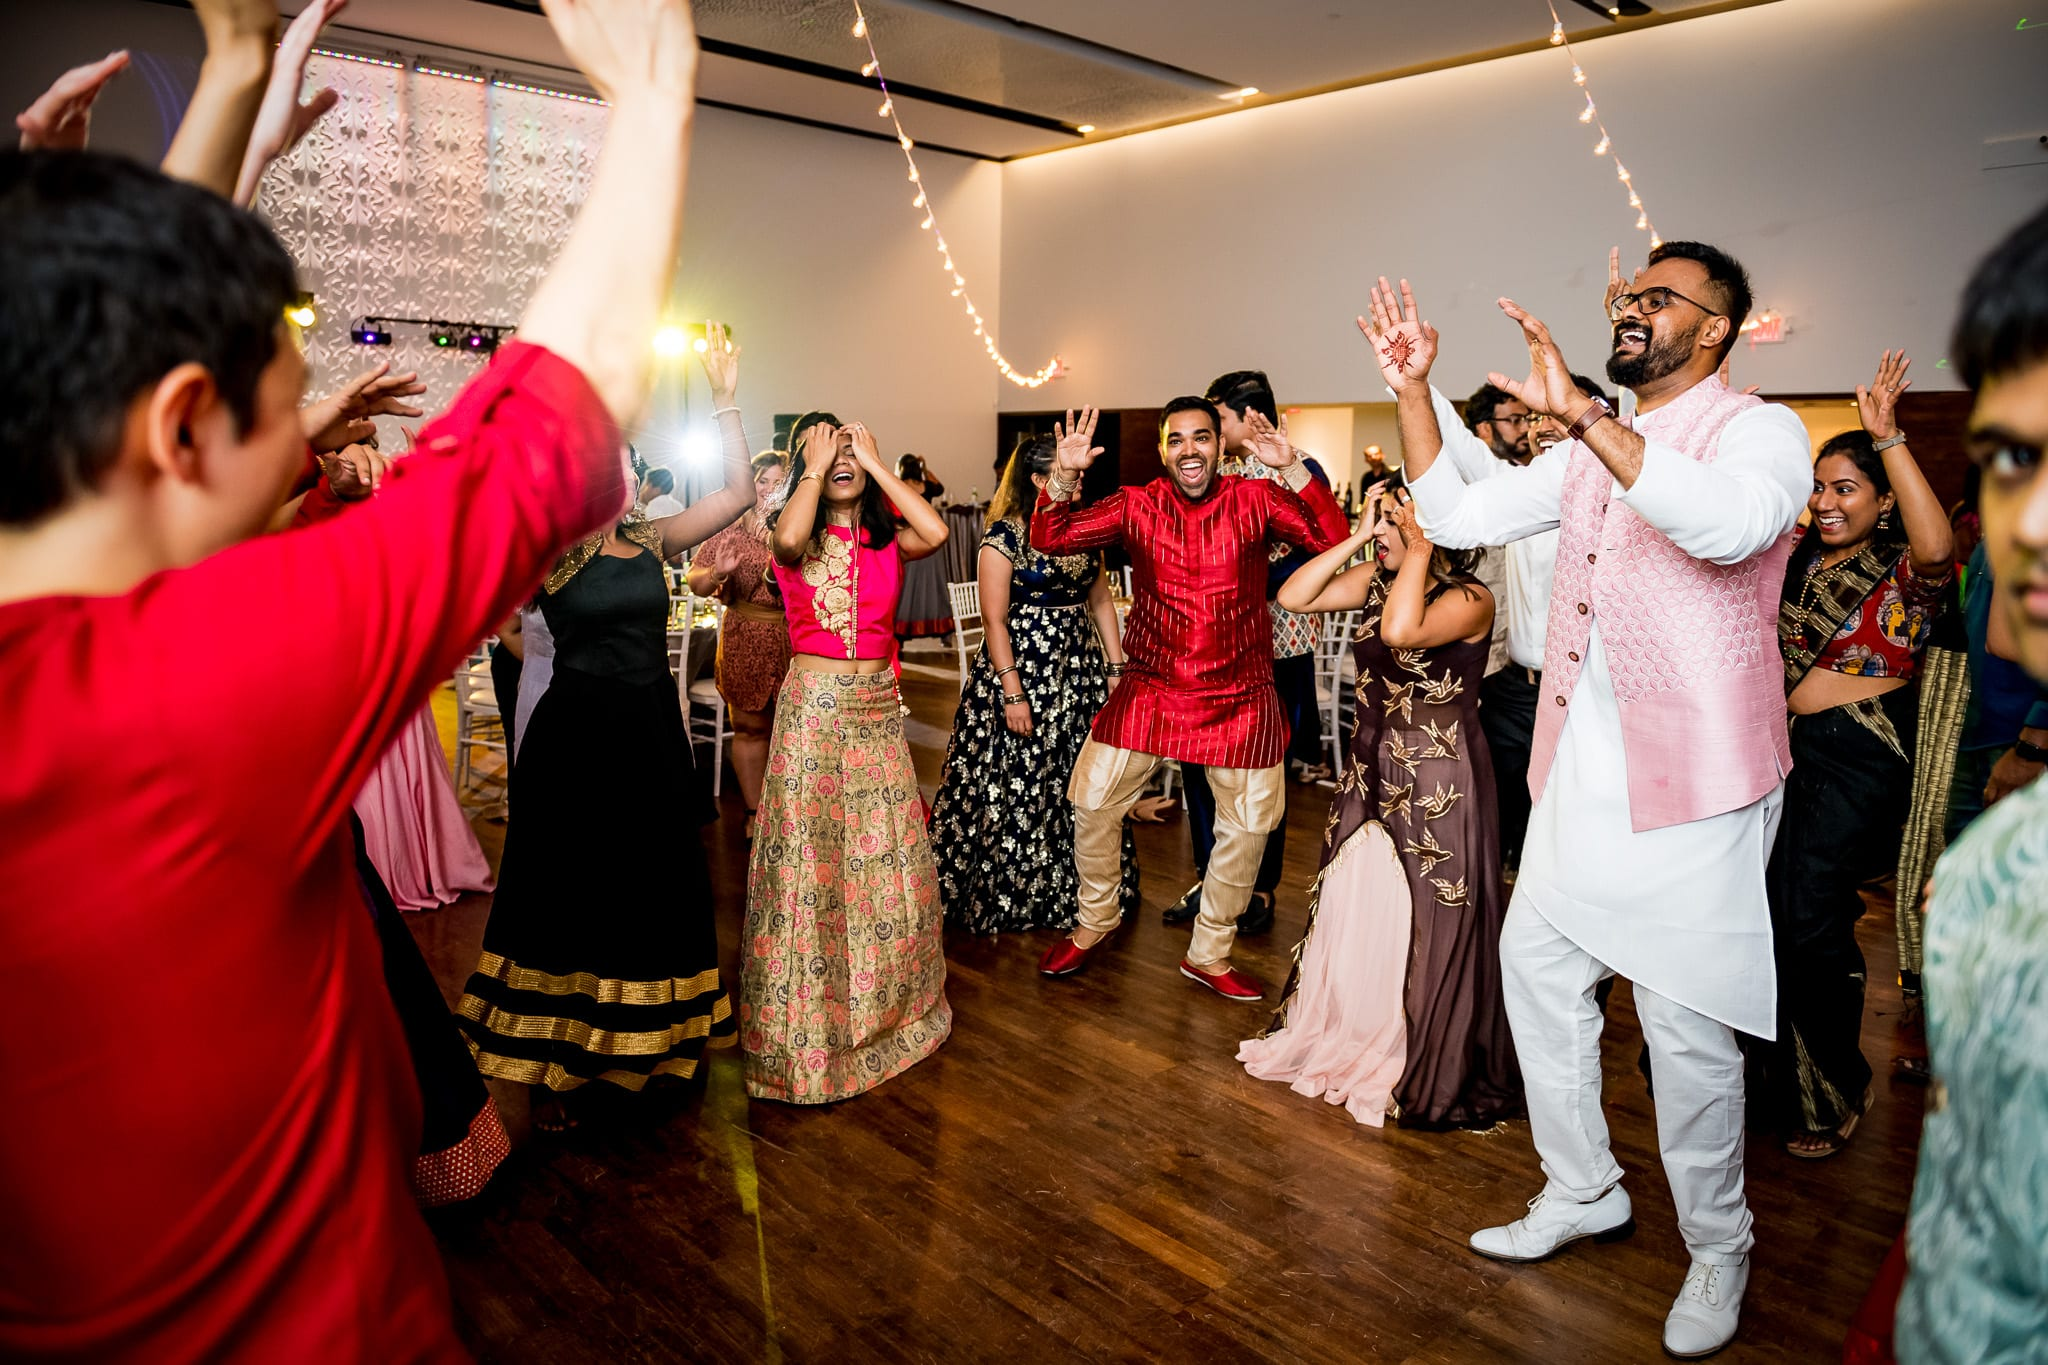 Wedding guests passionately dancing with groom during wedding reception at The Blaisdell